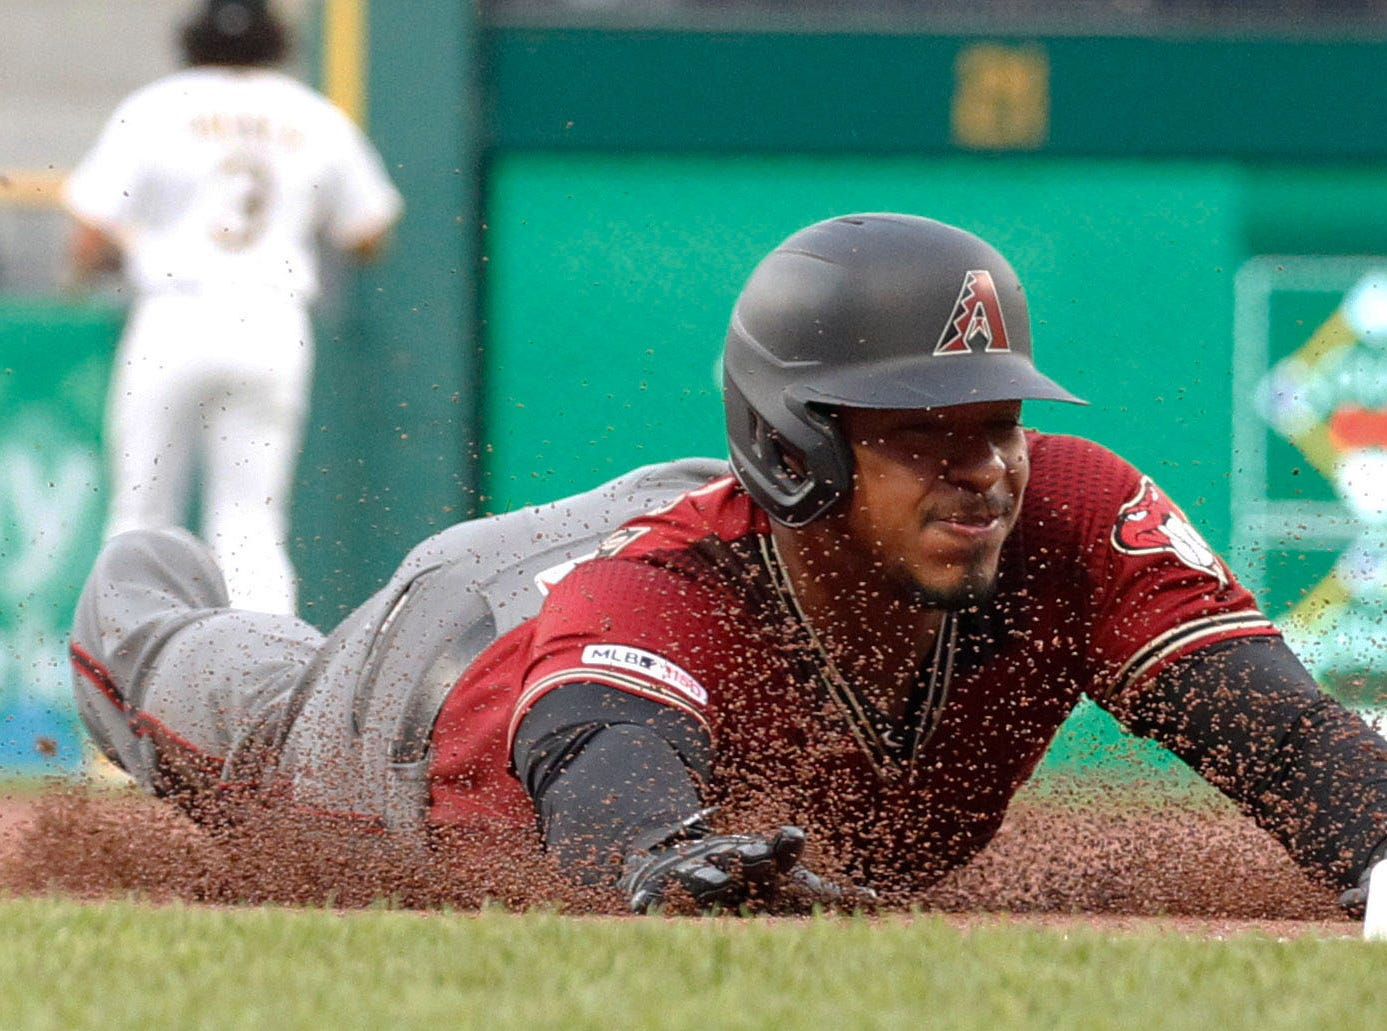 Apr 24, 2019; Pittsburgh, PA, USA; Arizona Diamondbacks third baseman Eduardo Escobar (5) slides into third base with a triple against the Pittsburgh Pirates during the first inning at PNC Park. Mandatory Credit: Charles LeClaire-USA TODAY Sports